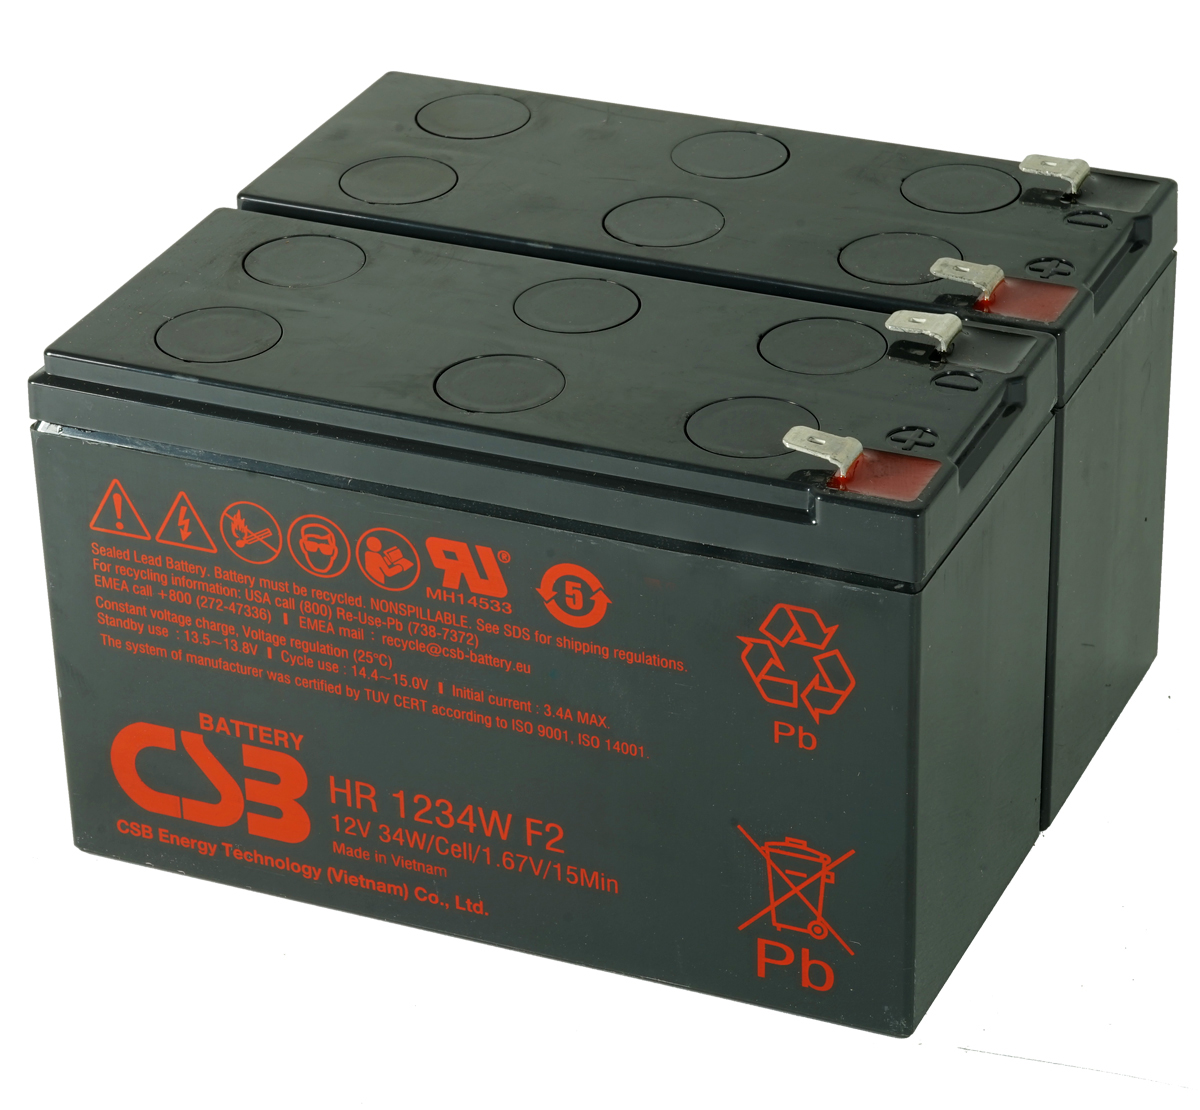 MDS161 UPS Battery Kit - Replaces APC RBC161